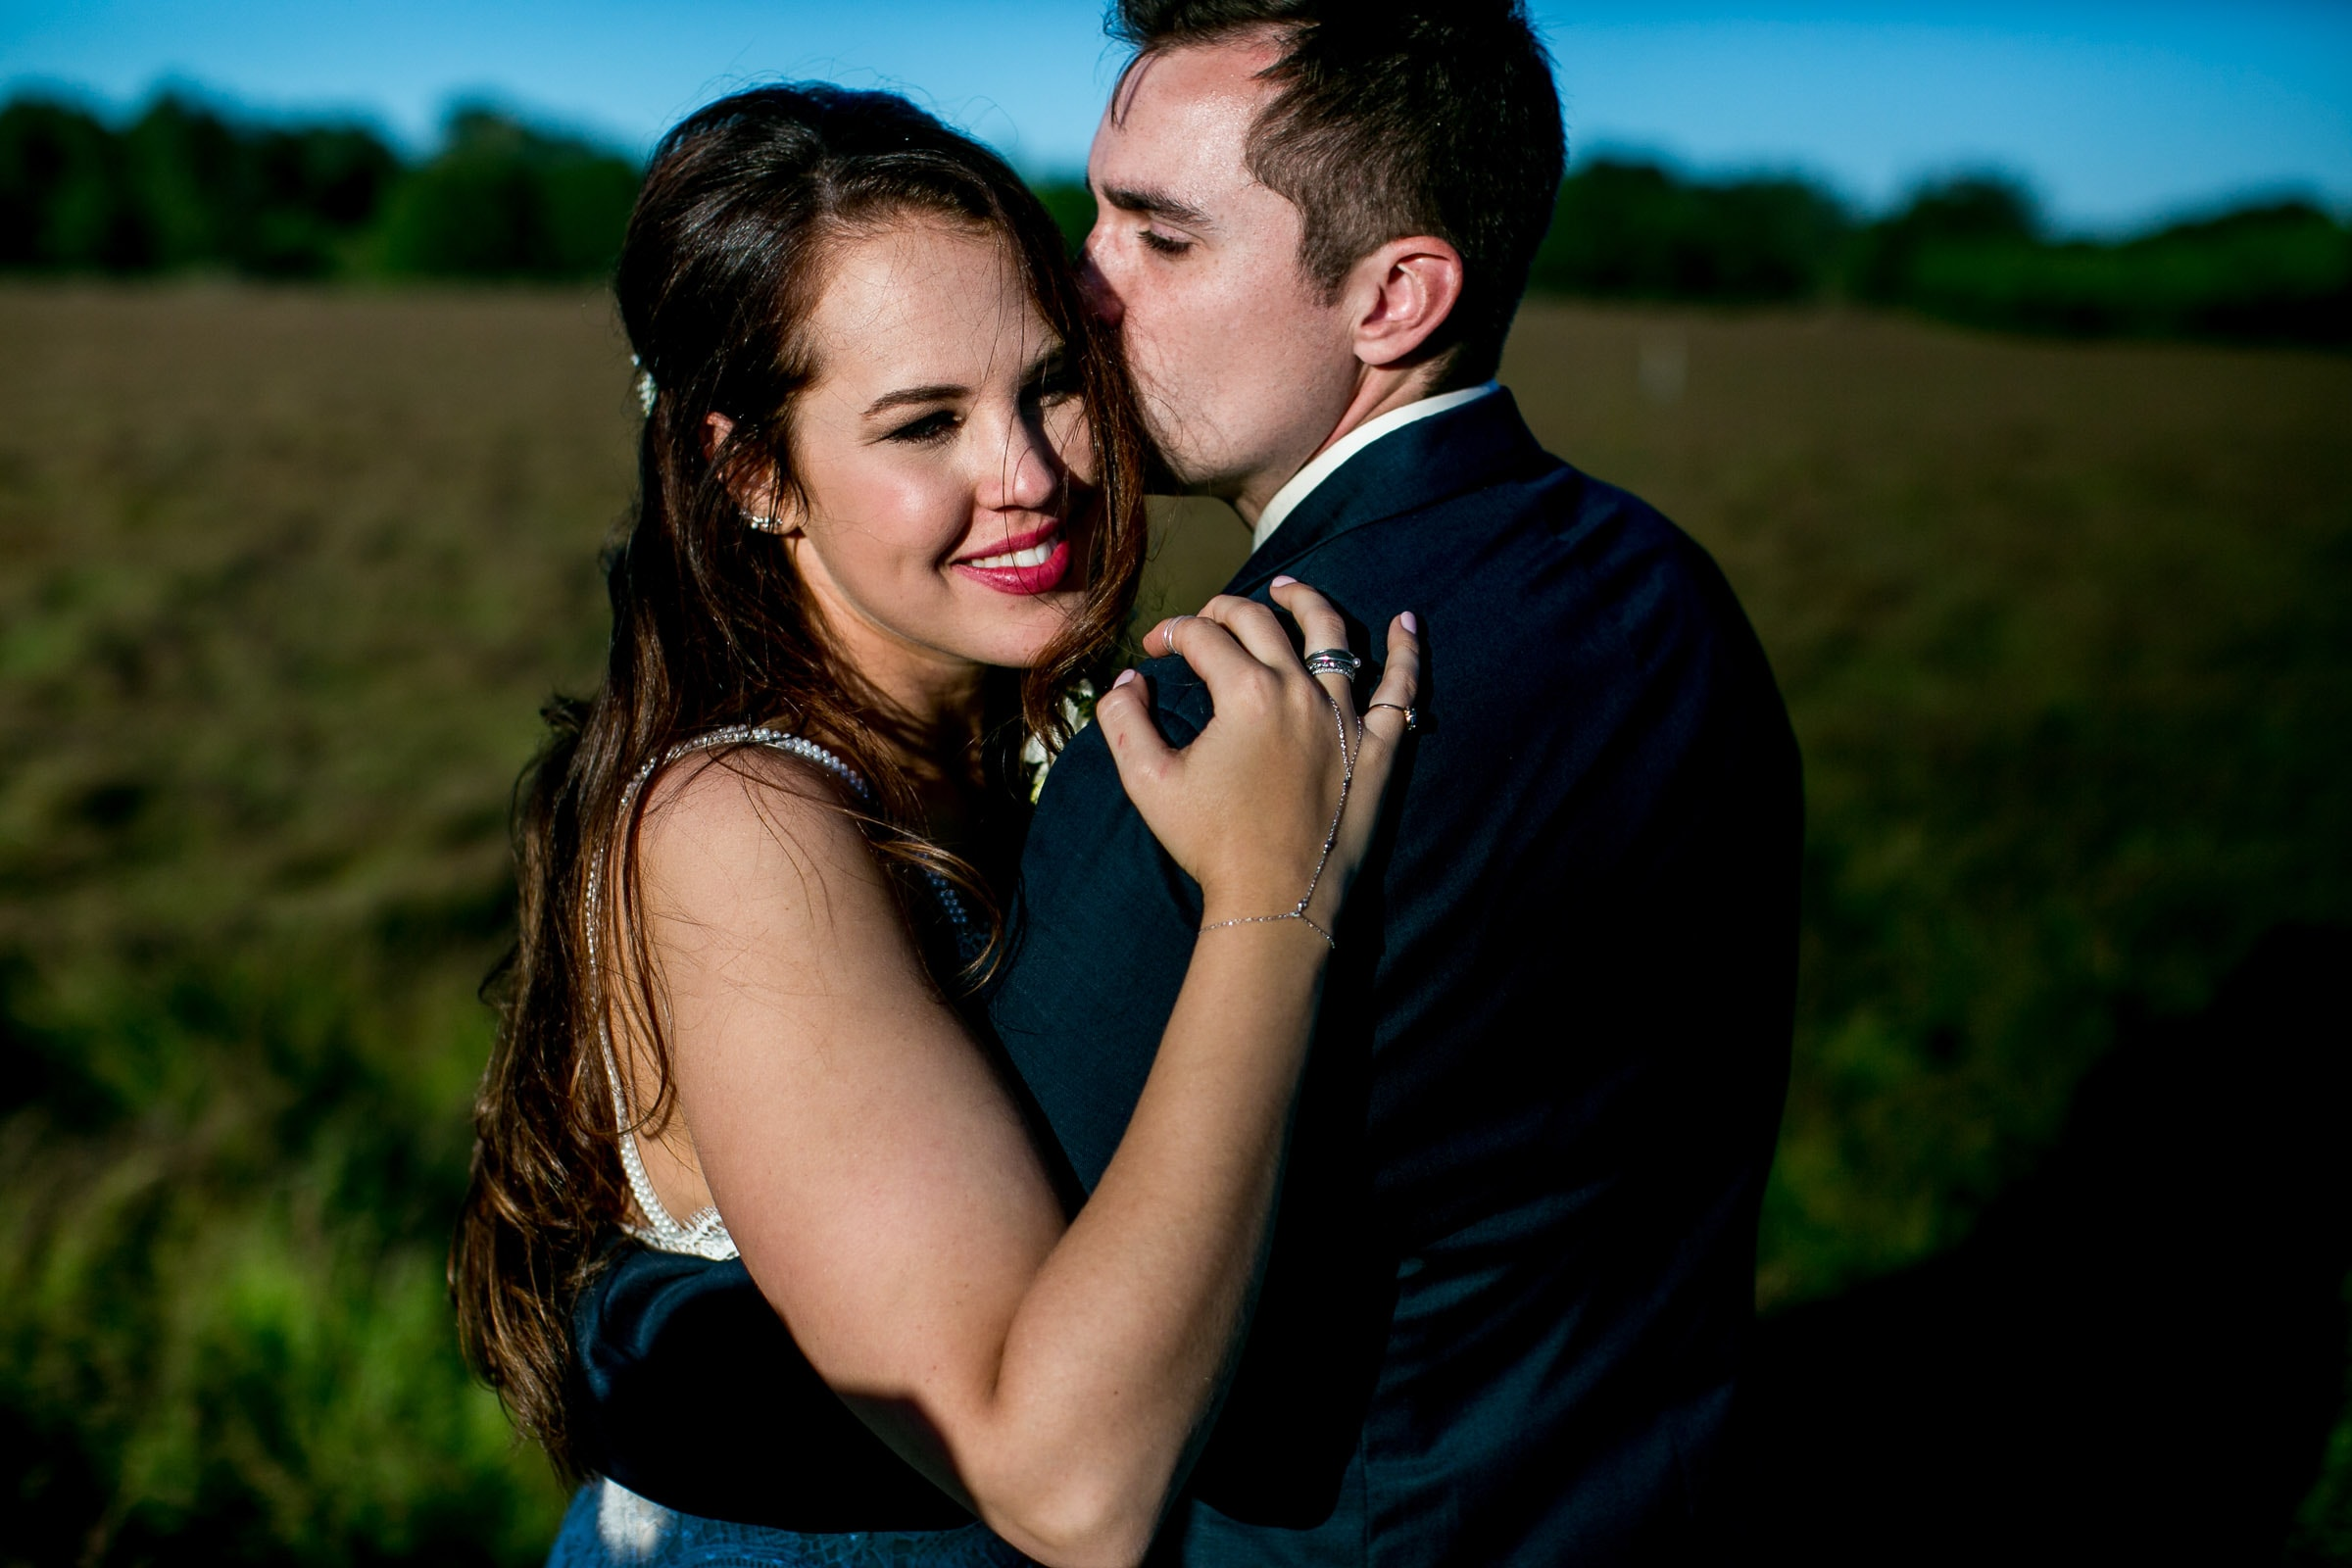 Bride and groom embracing together in the fields enjoying sunset during their Ohana Barn wedding day.